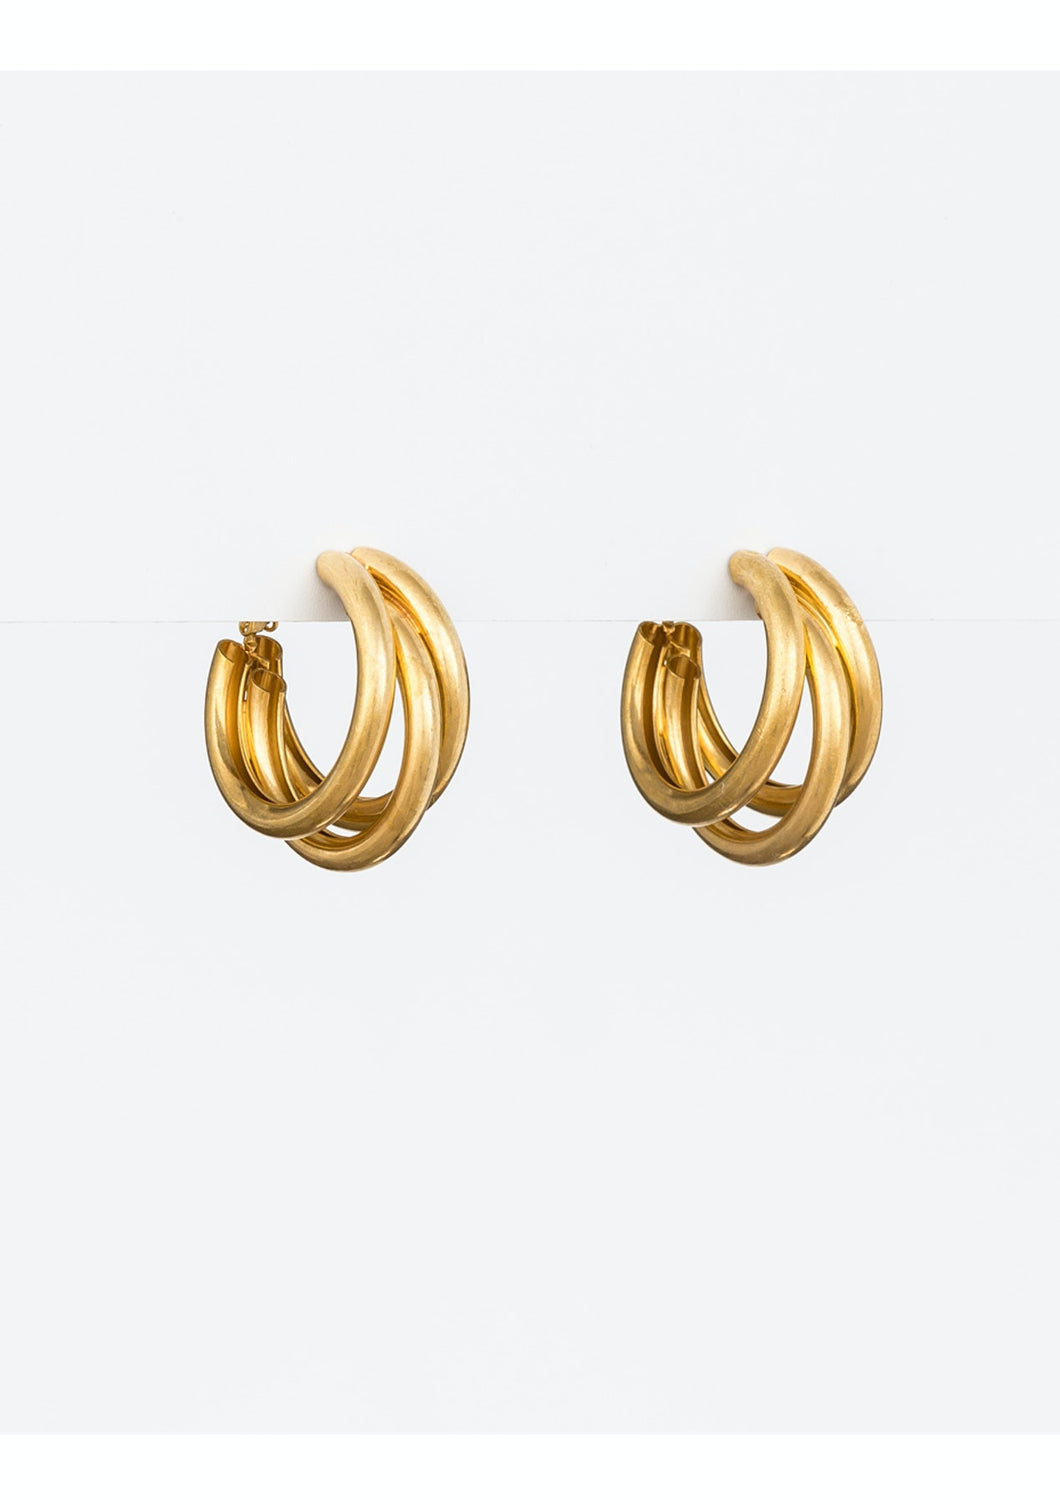 Worn Gold Tri Hoop Earrings